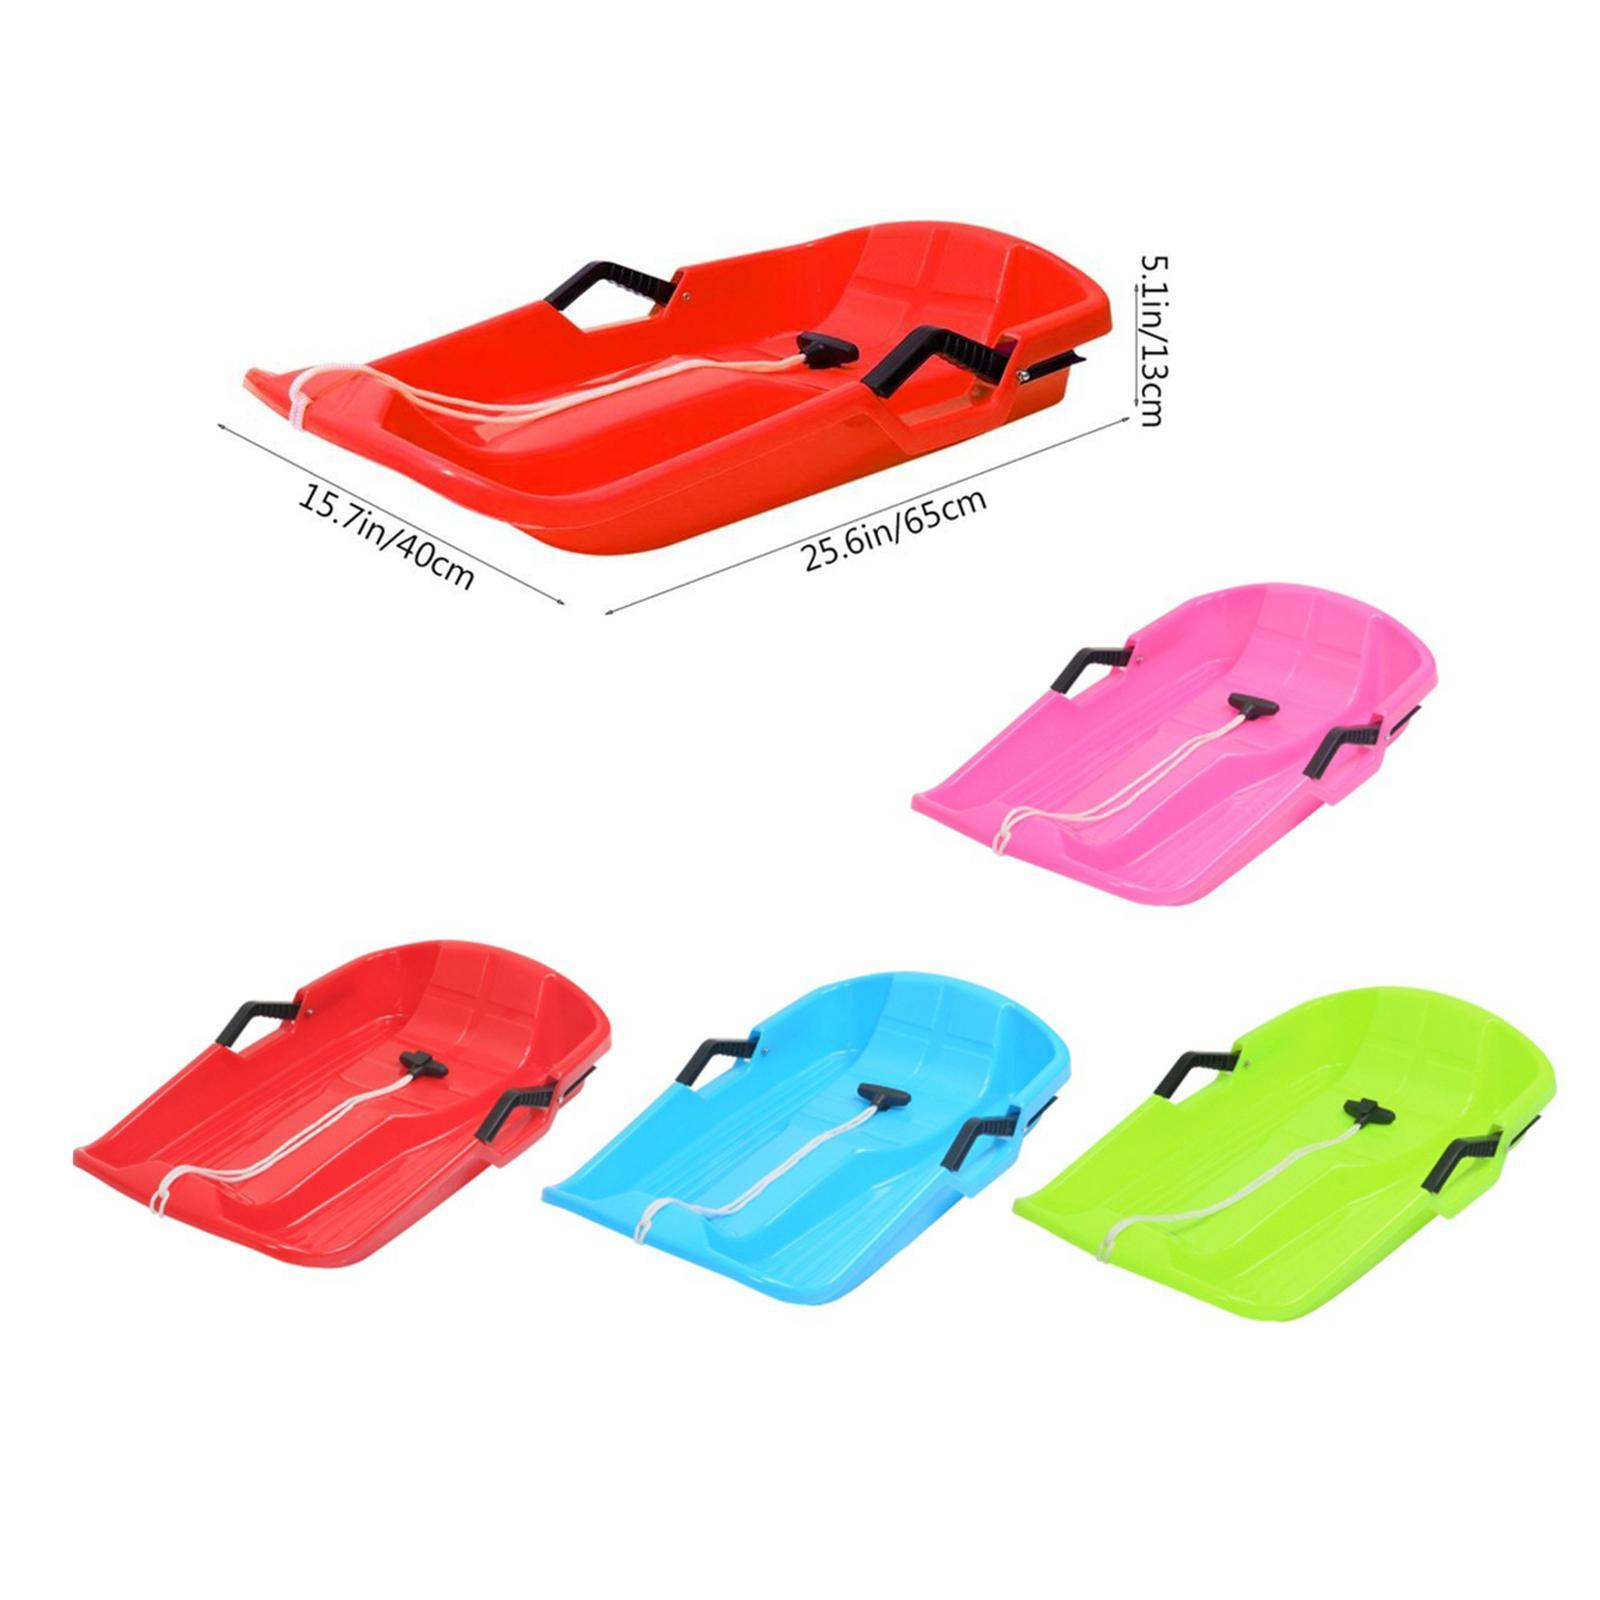 thumbnail 3 - Large Kids Adults Snow Sledge Sleigh Sled Toboggan Pull Rope Downhill Board